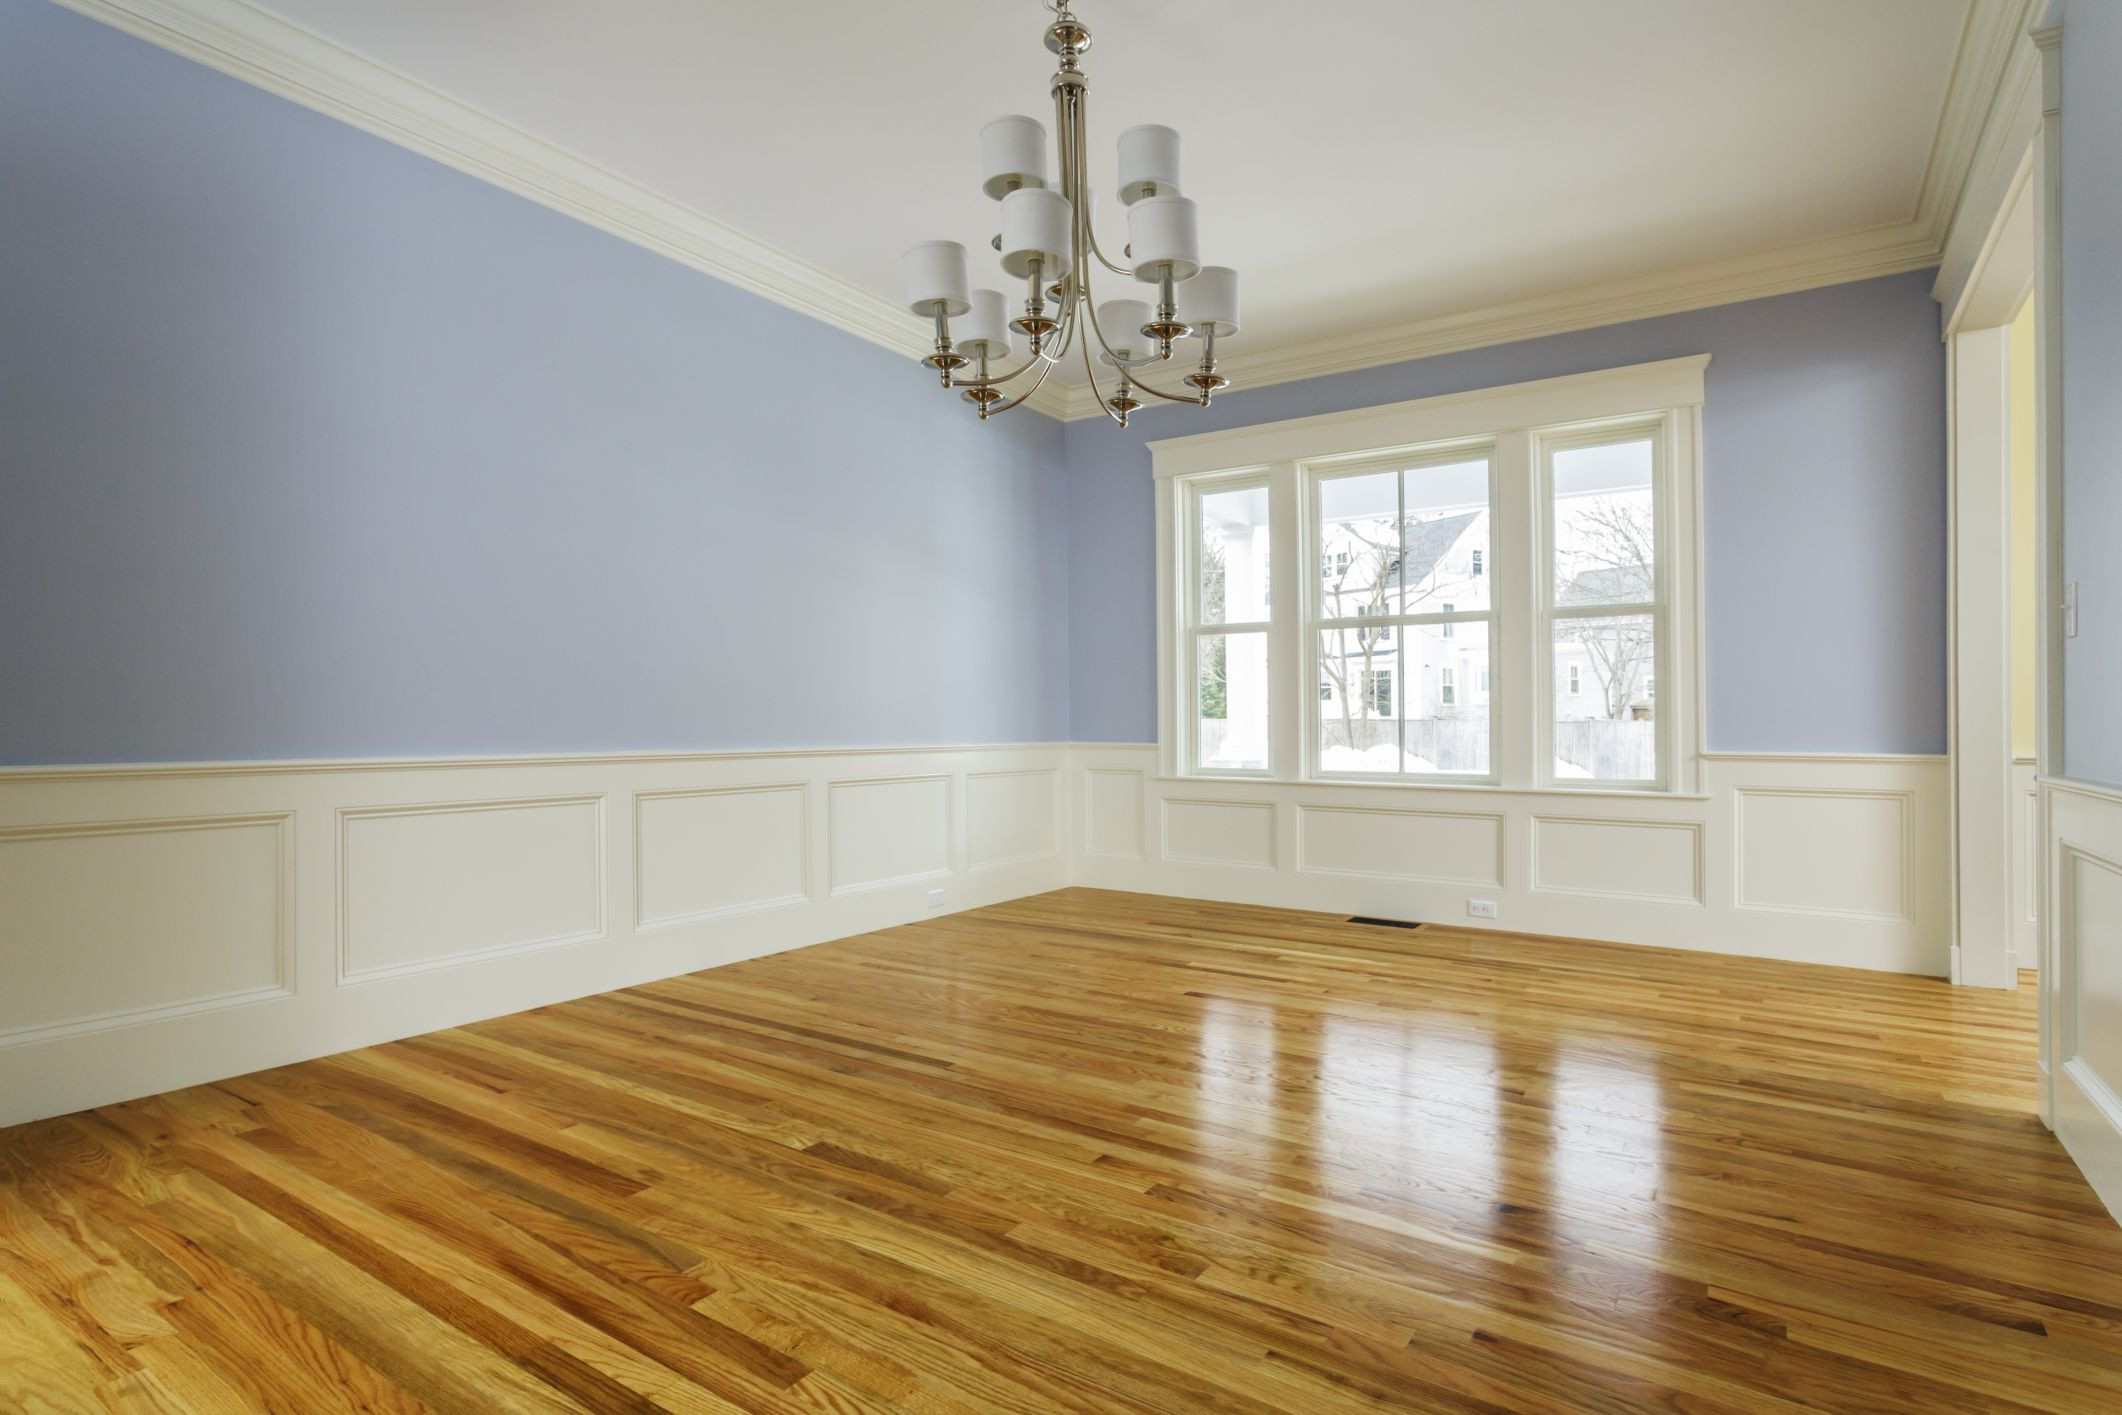 how much does it cost to hardwood floor a house of the cost to refinish hardwood floors inside 168686572 highres 56a2fd773df78cf7727b6cb3